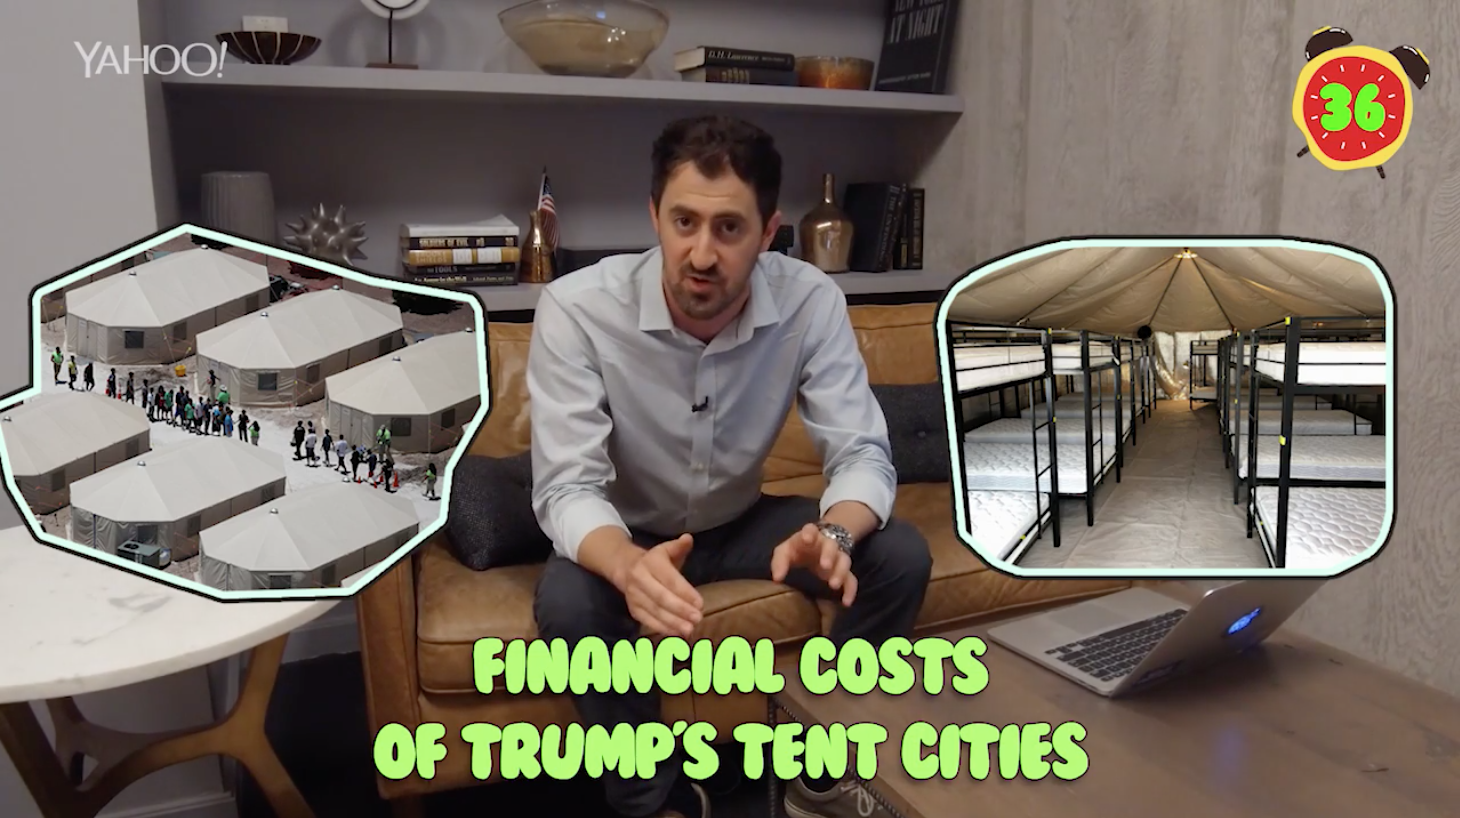 Business + Coffee: EU, India hit US with tariffs, Trump's tent cities, Starbucks plunges